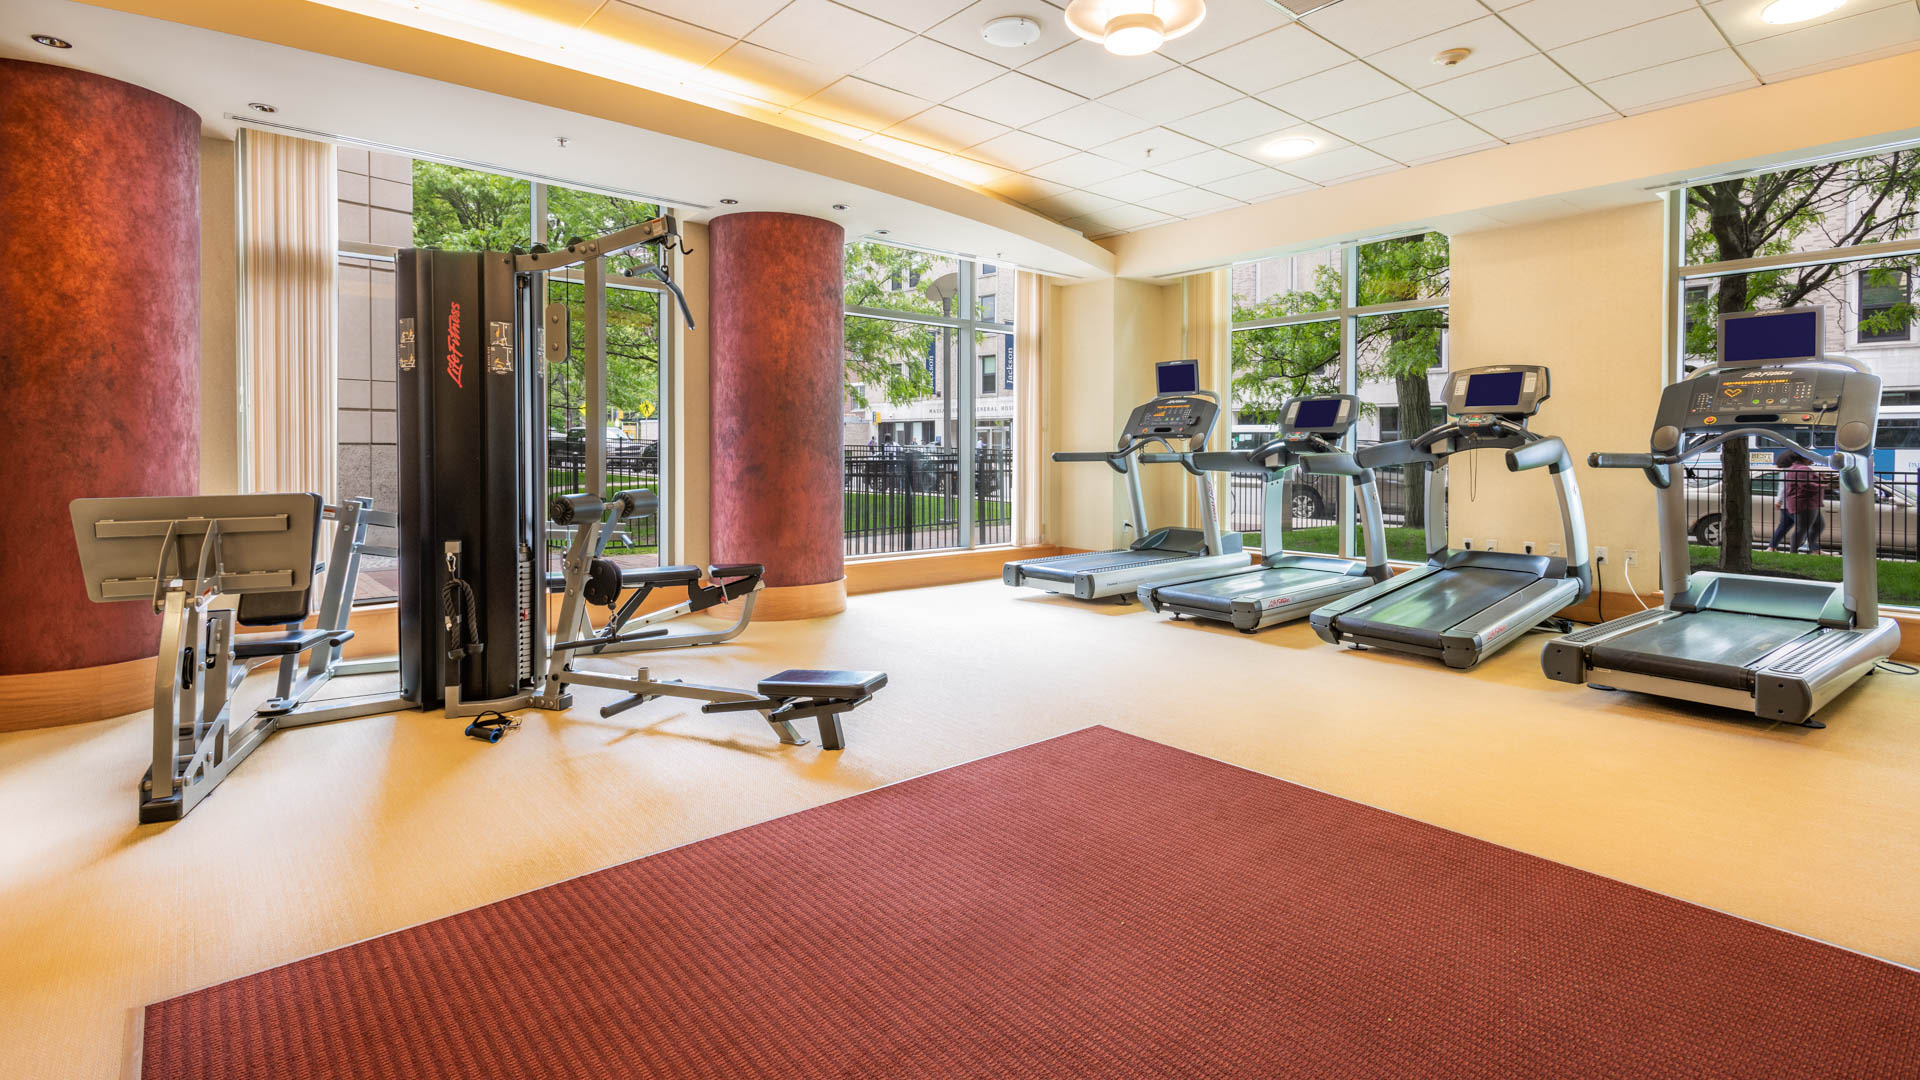 The West End Apartments - Asteria, Villas and Vesta - Fitness Center